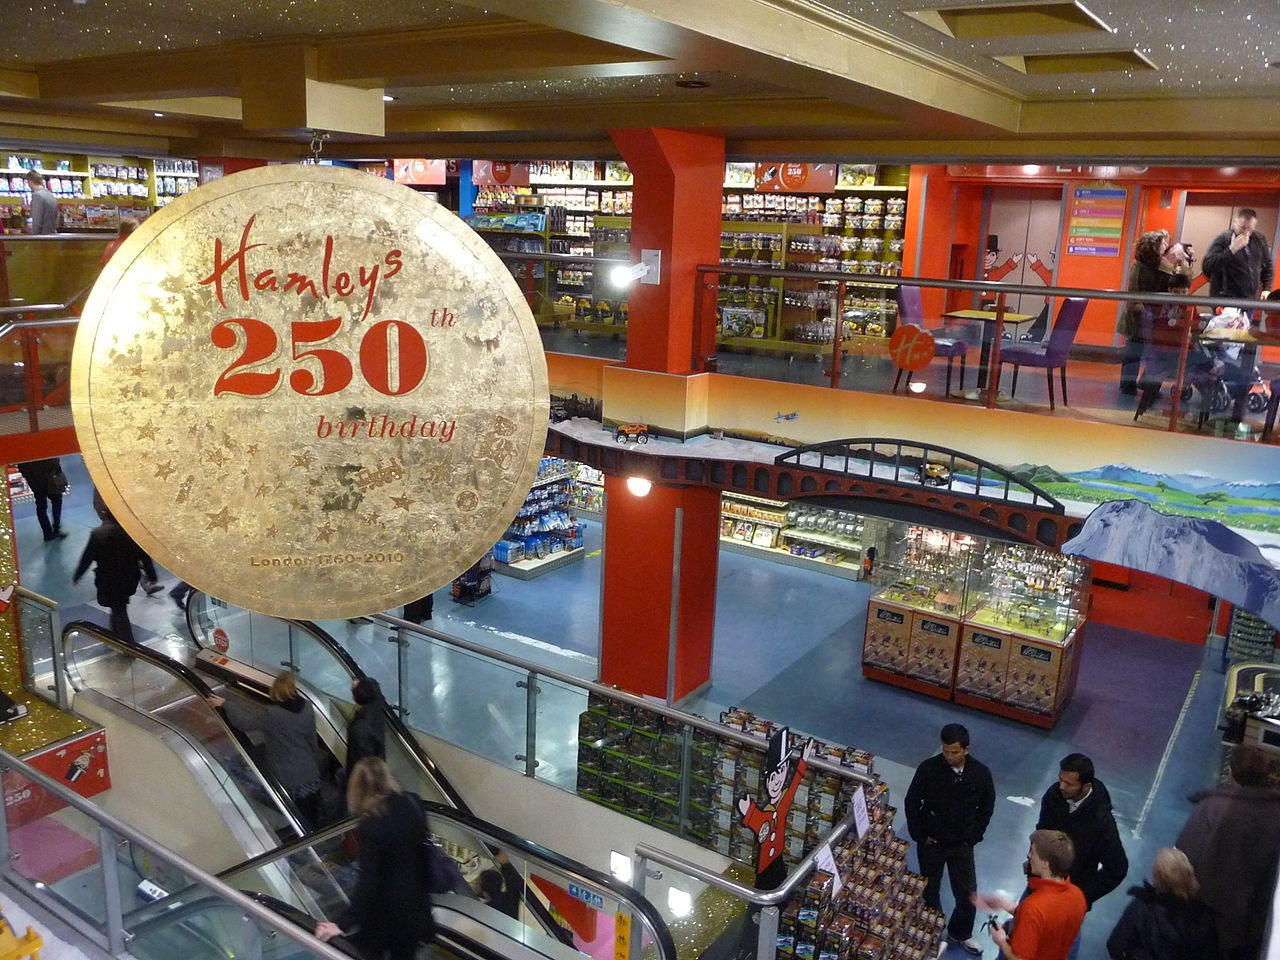 Hamleys_Interior1.jpg